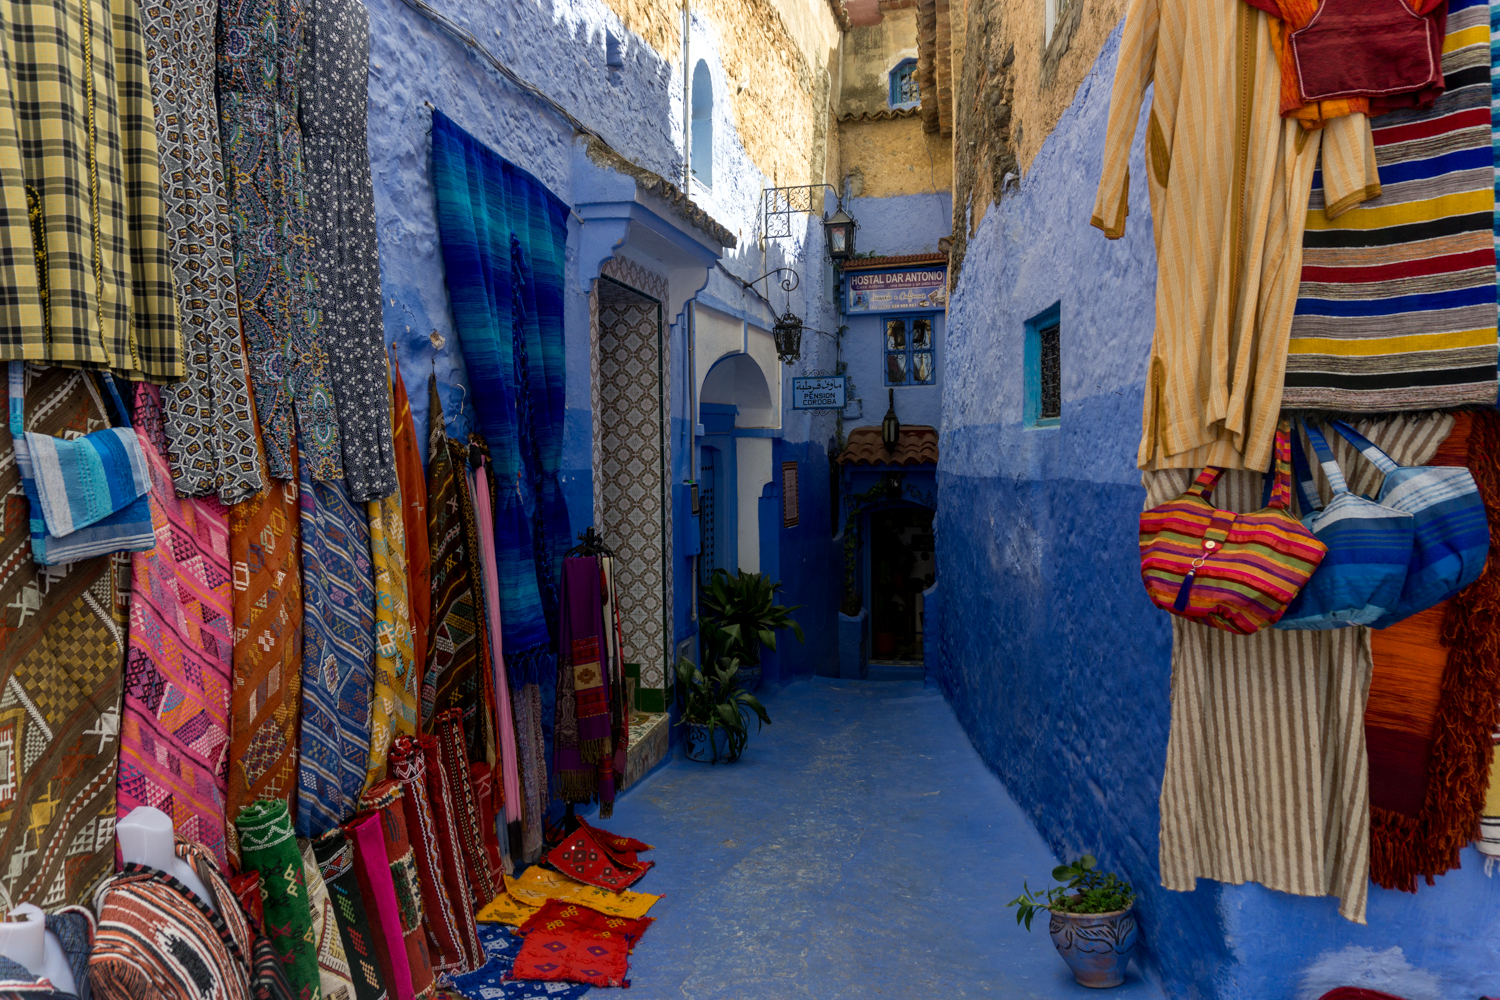 The blue walls are interrupted by brightly colored cloth.